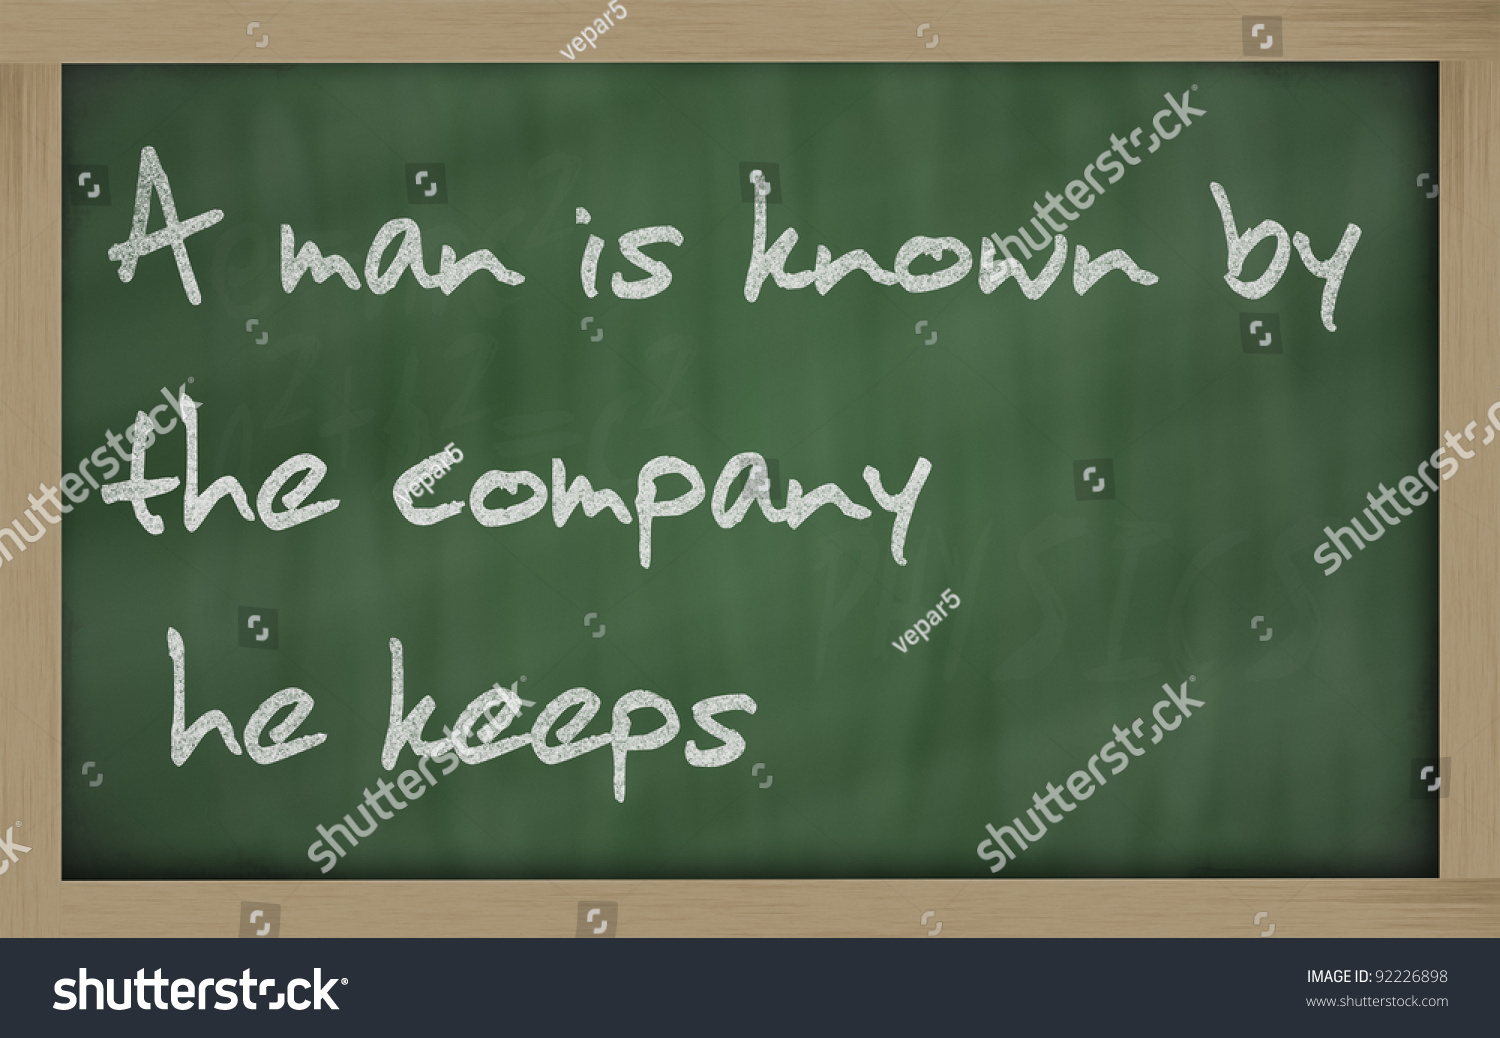 Man is known by the company he keeps essay